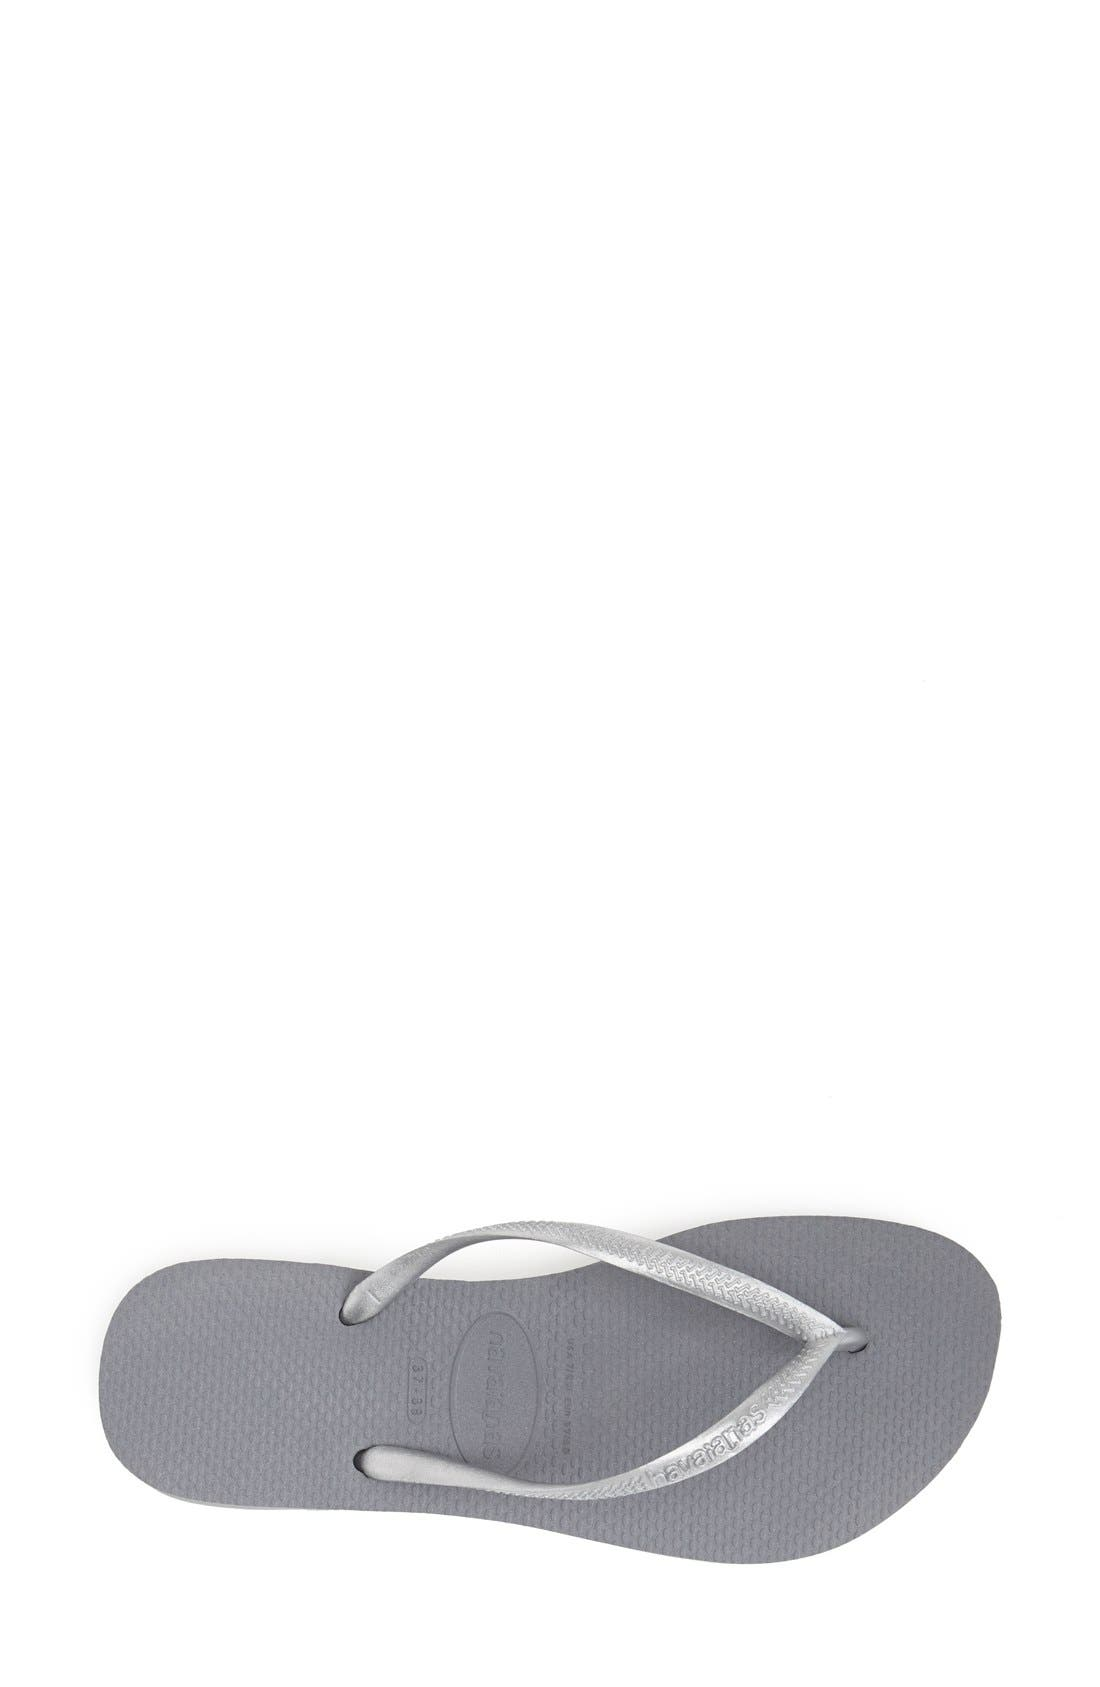 'Slim' Flip Flop,                             Alternate thumbnail 5, color,                             STEEL GREY